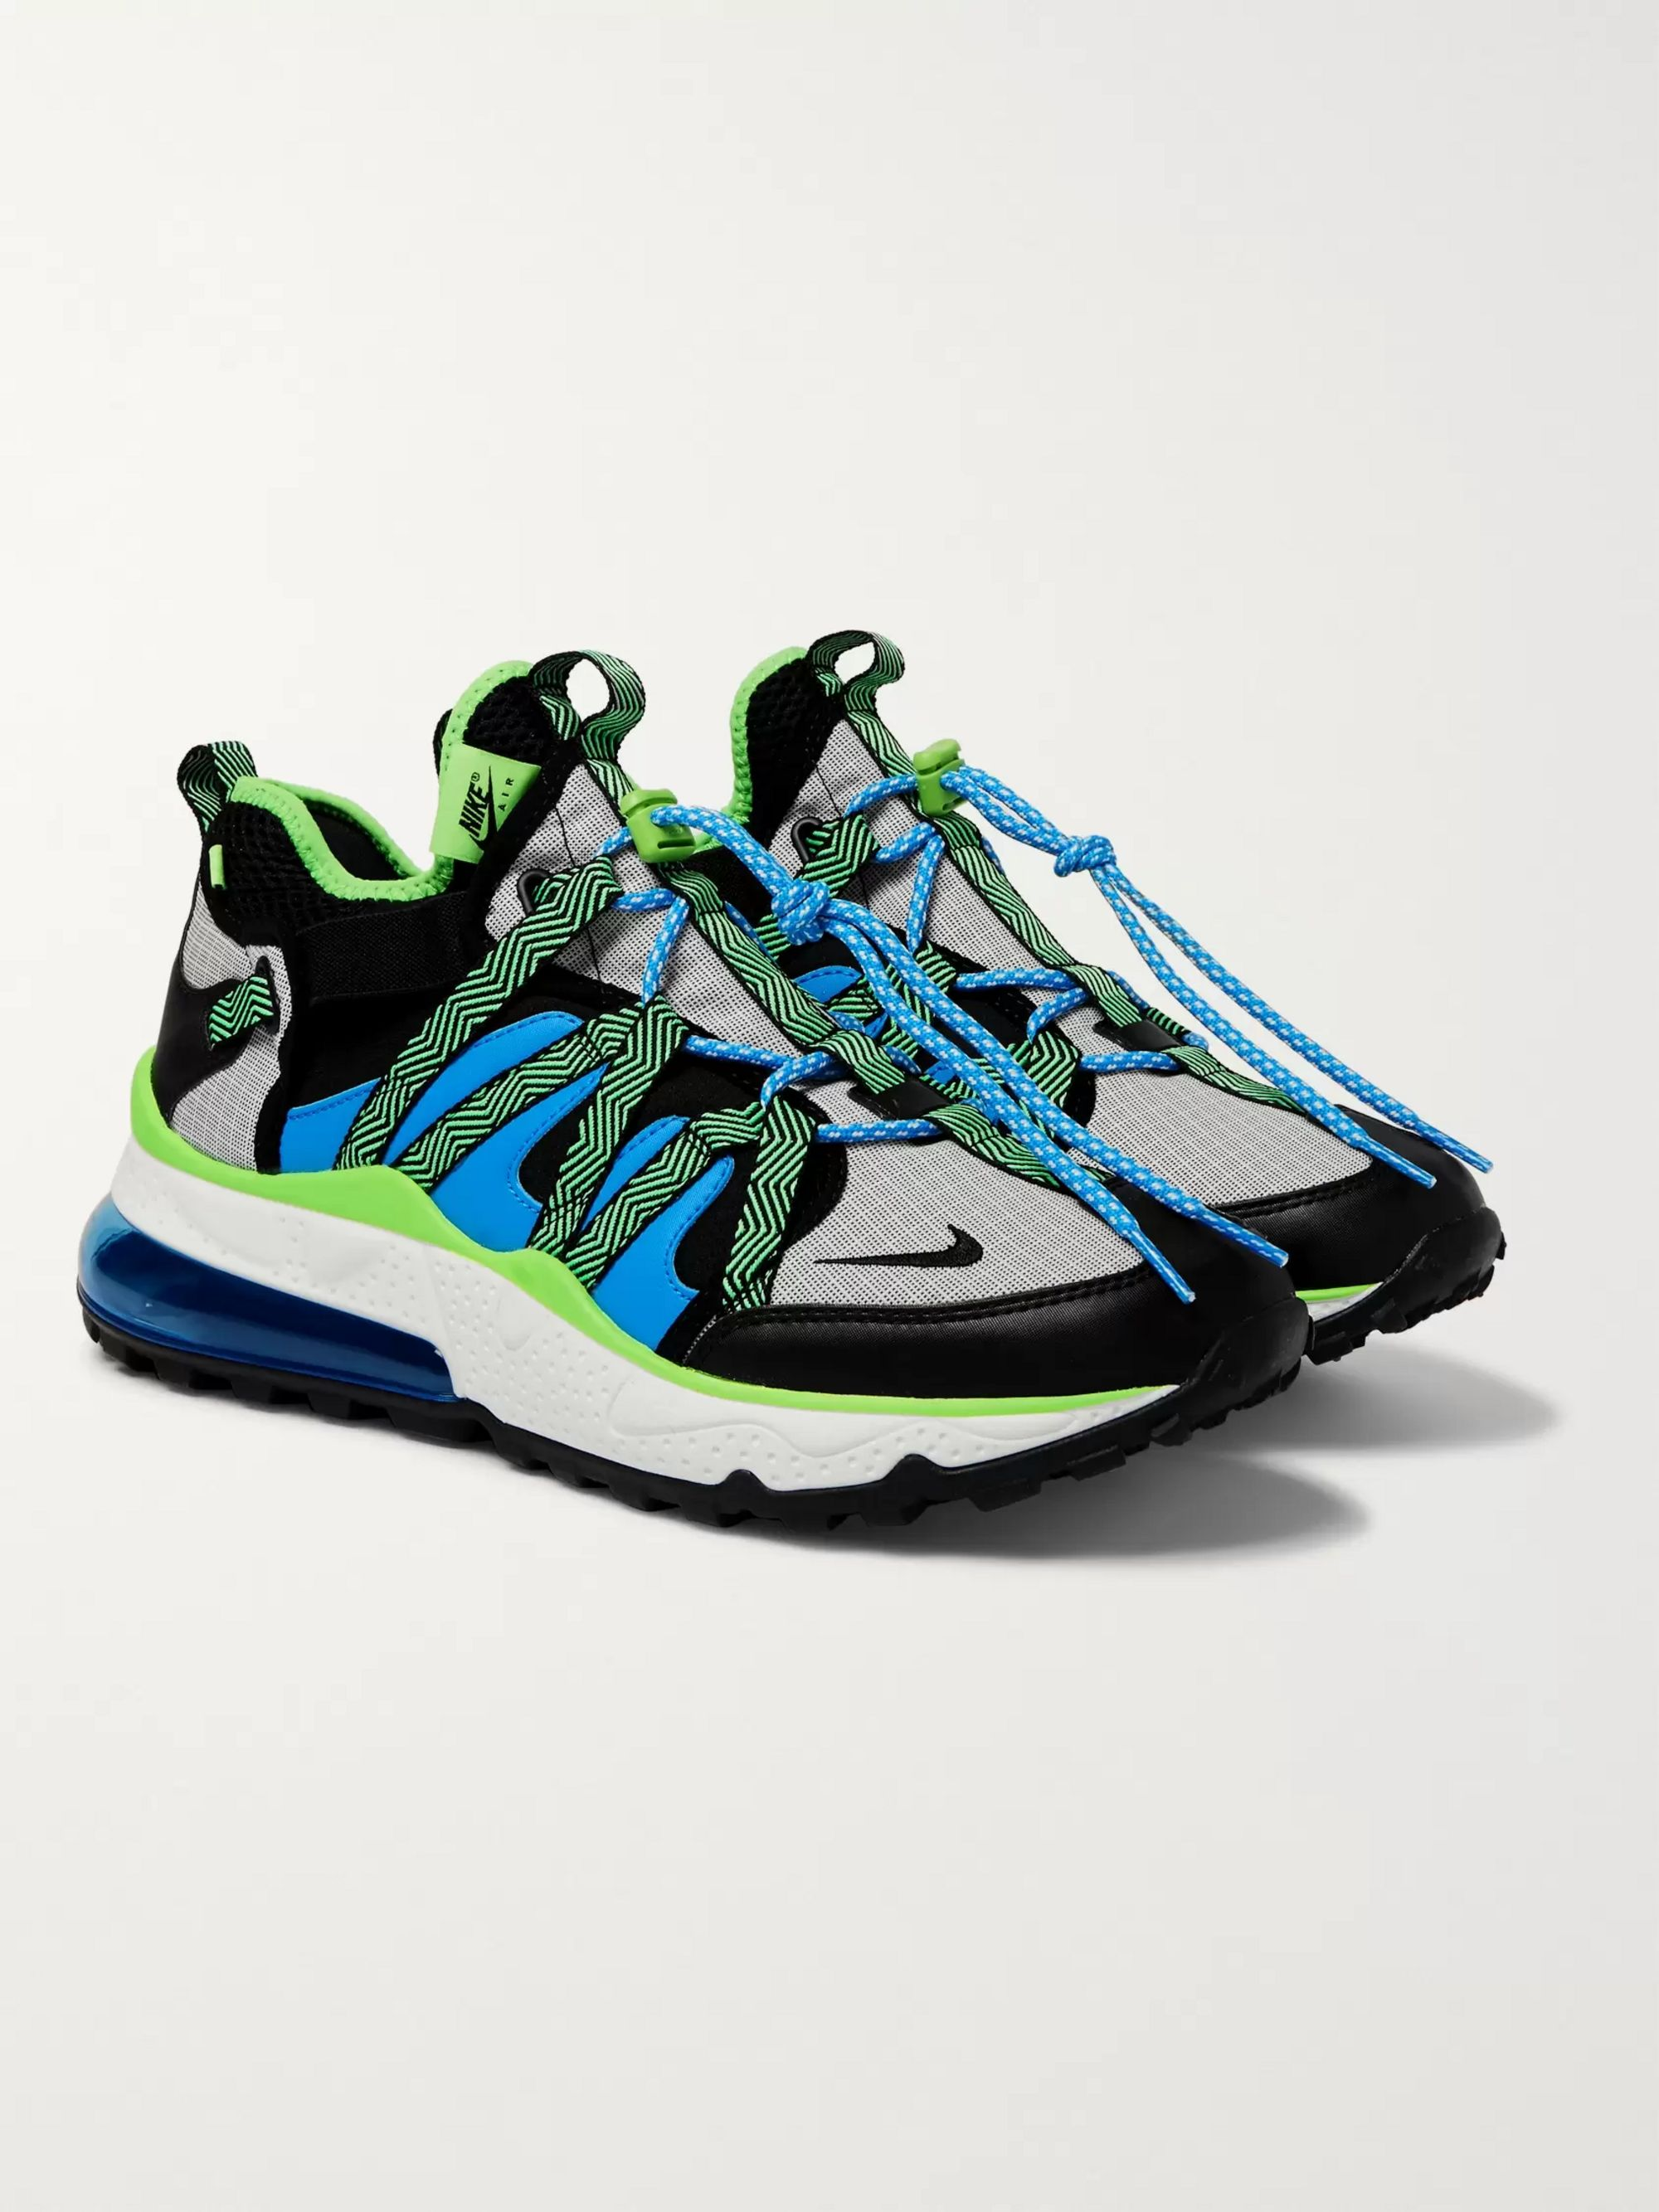 hot sale online 1508f 1aa28 Air Max 270 Bowfin Mesh and Nylon Sneakers